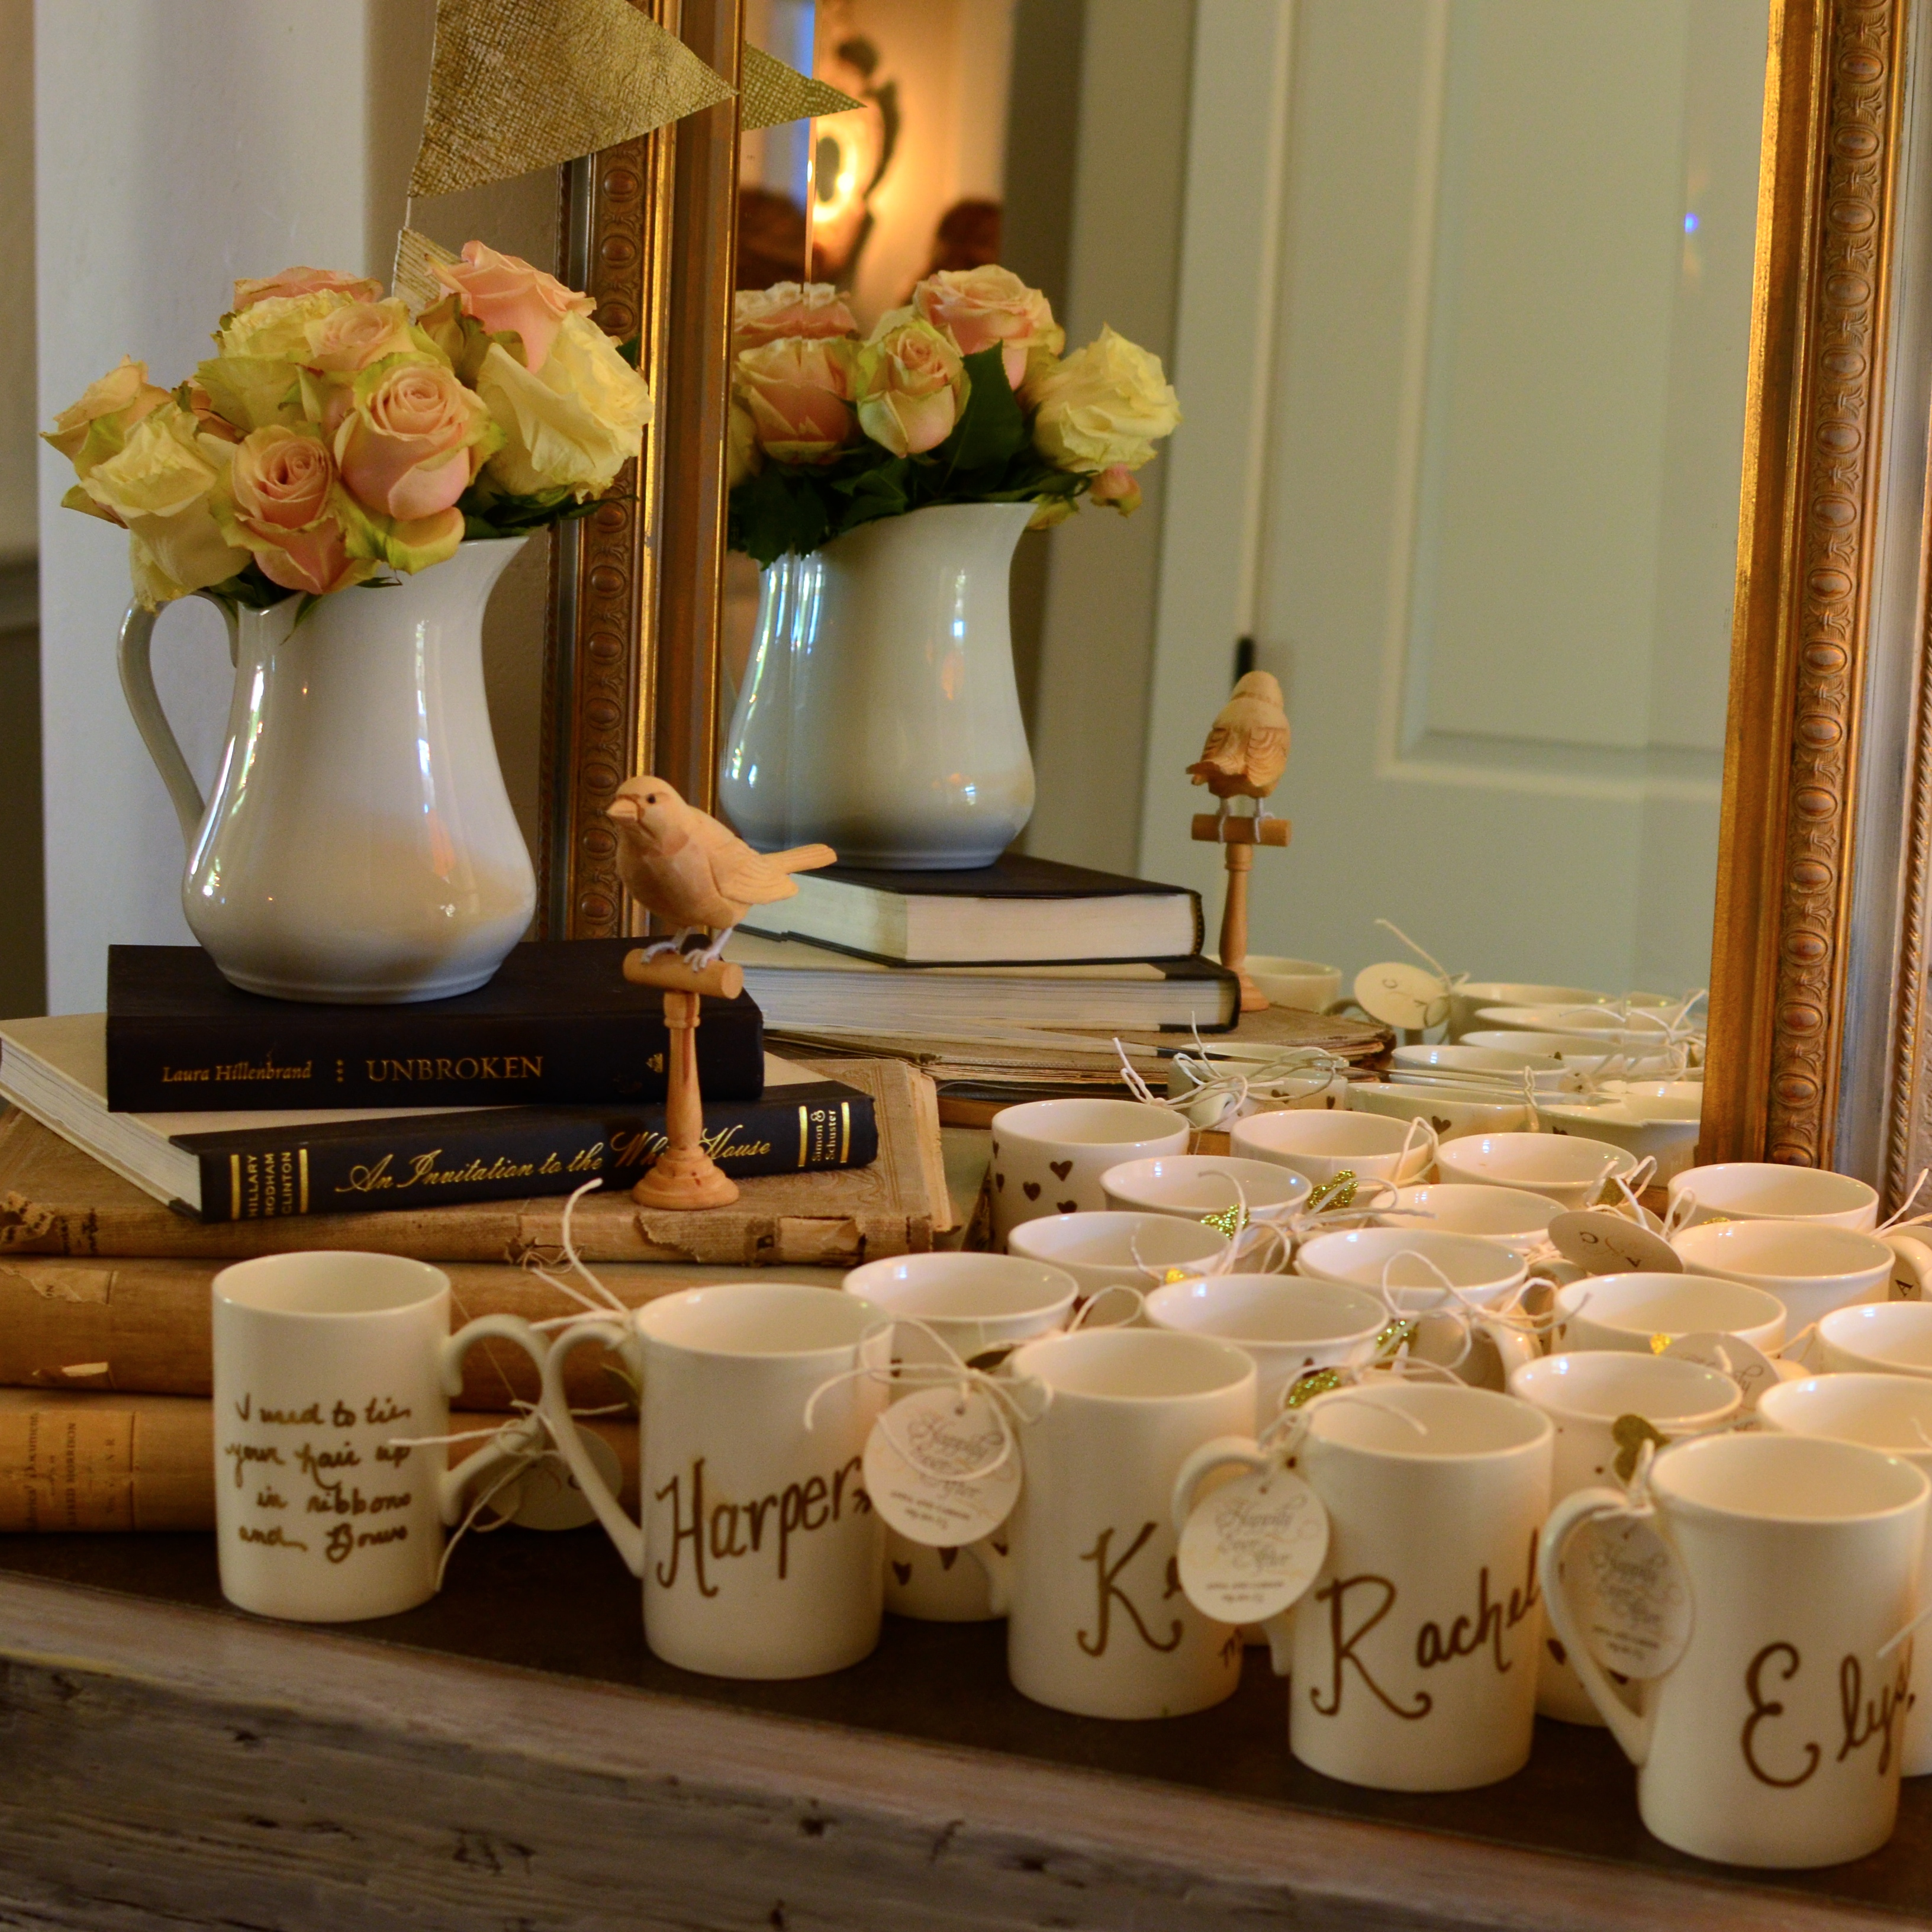 HOW TO HOST A BEAUTIFUL BRIDAL SHOWER